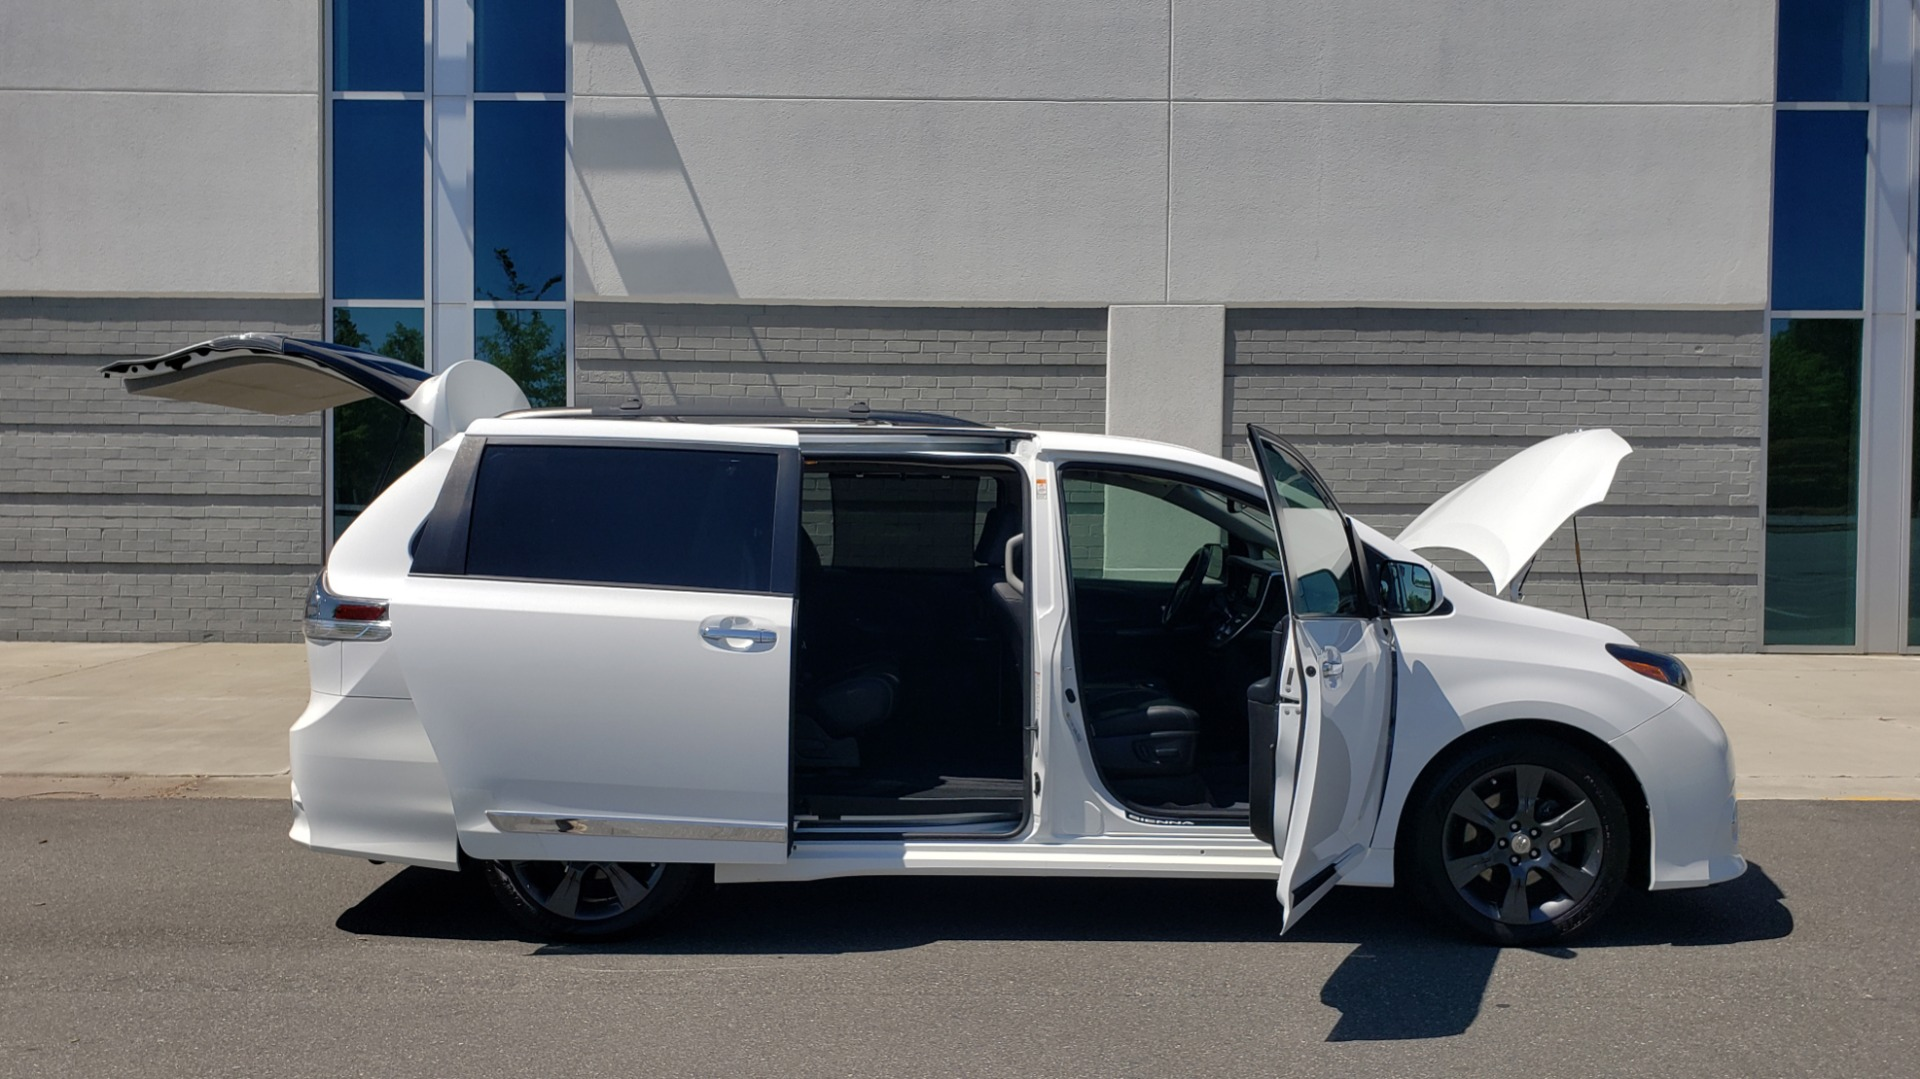 Used 2015 Toyota SIENNA SE 3.5L / FWD / 3-ROWS / 8-PASS / SUNROOF / DVD / REARVIEW for sale $21,995 at Formula Imports in Charlotte NC 28227 12